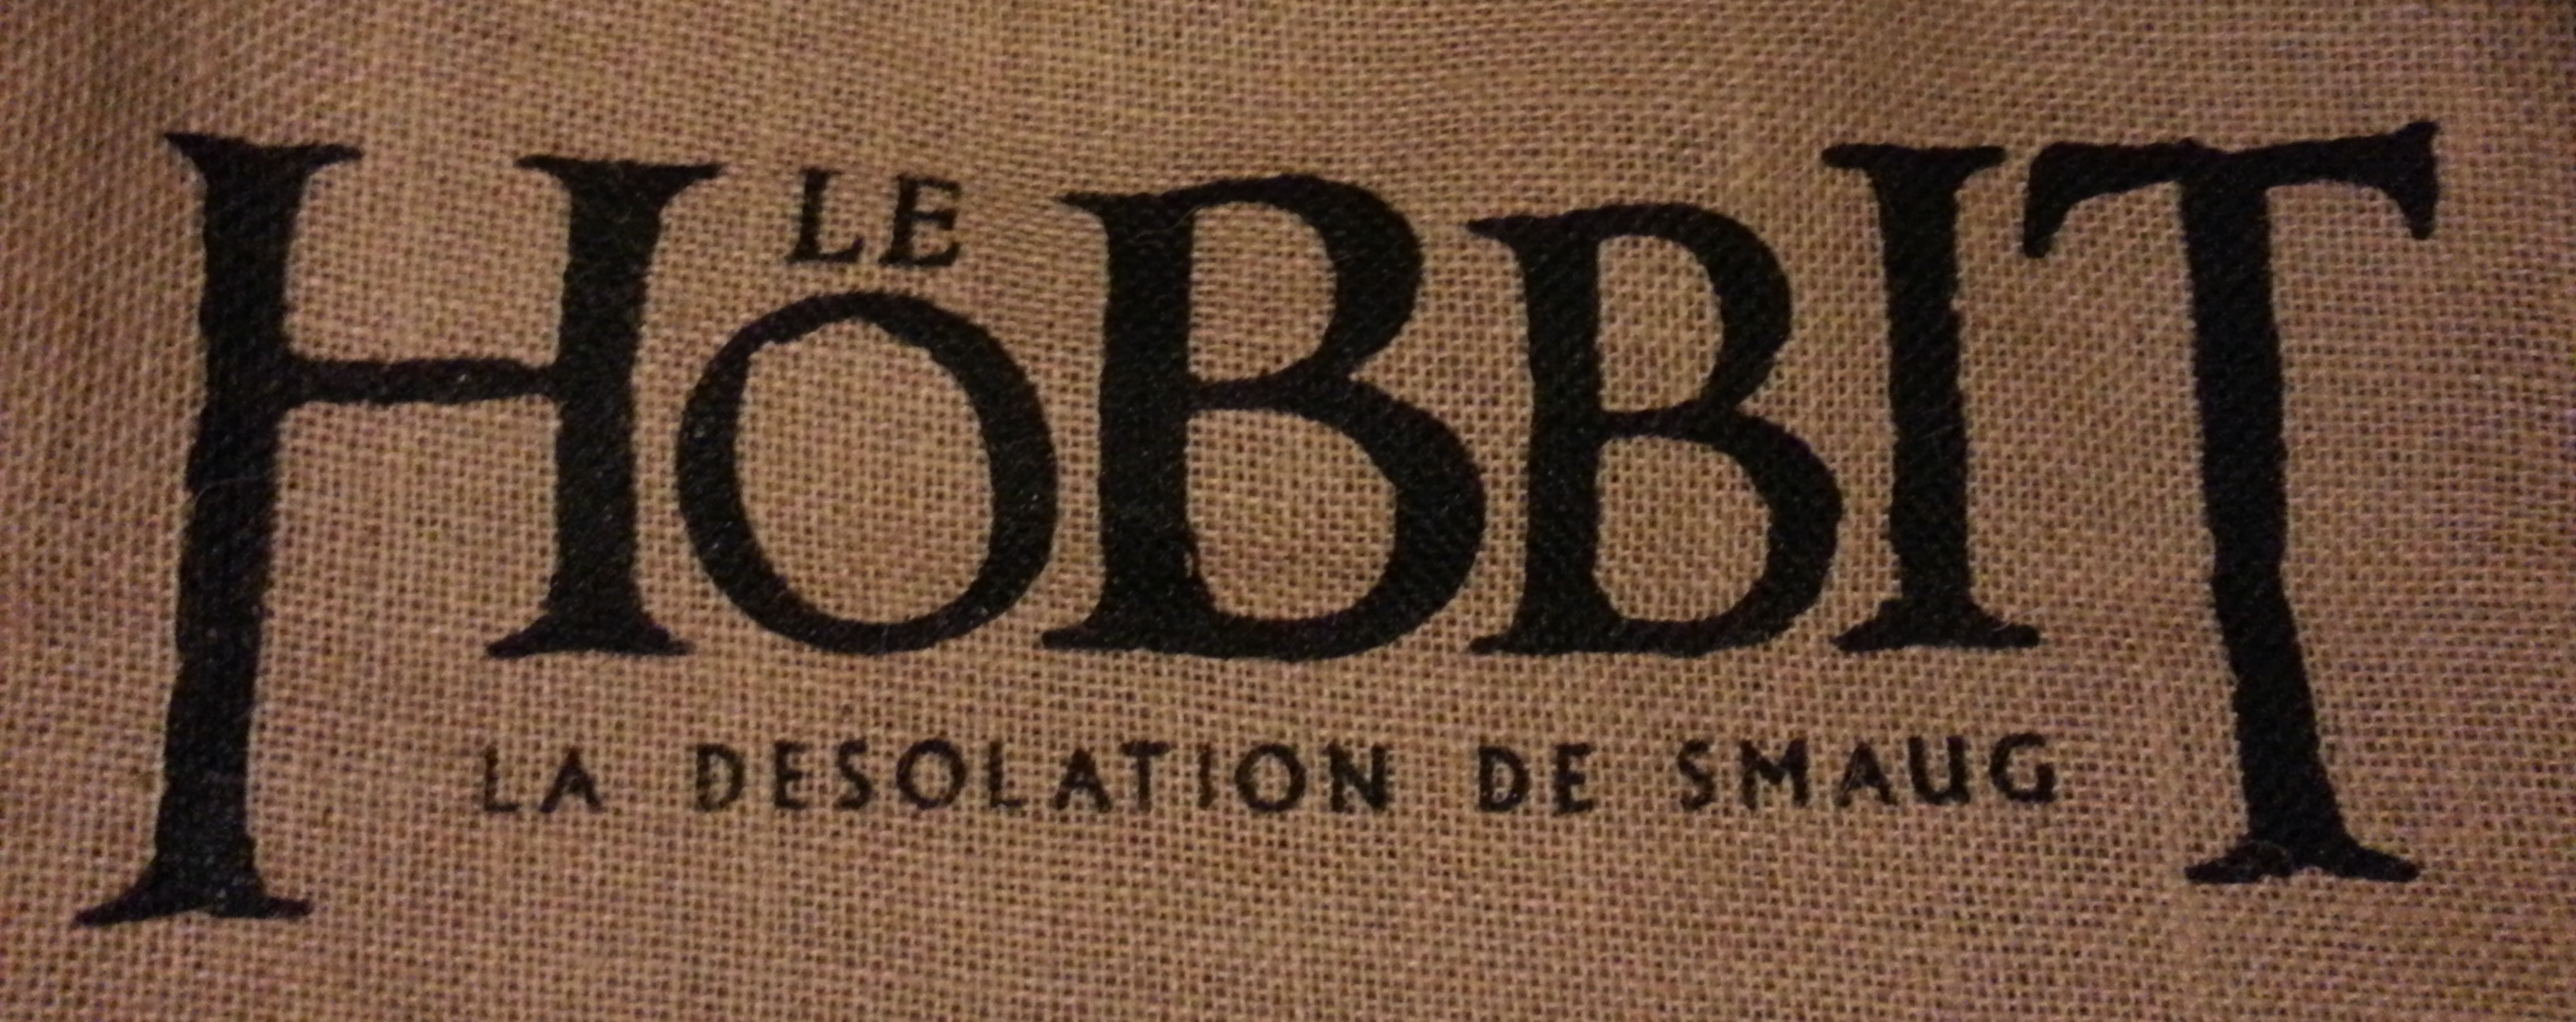 Le Hobbit: La désolation de Smaug